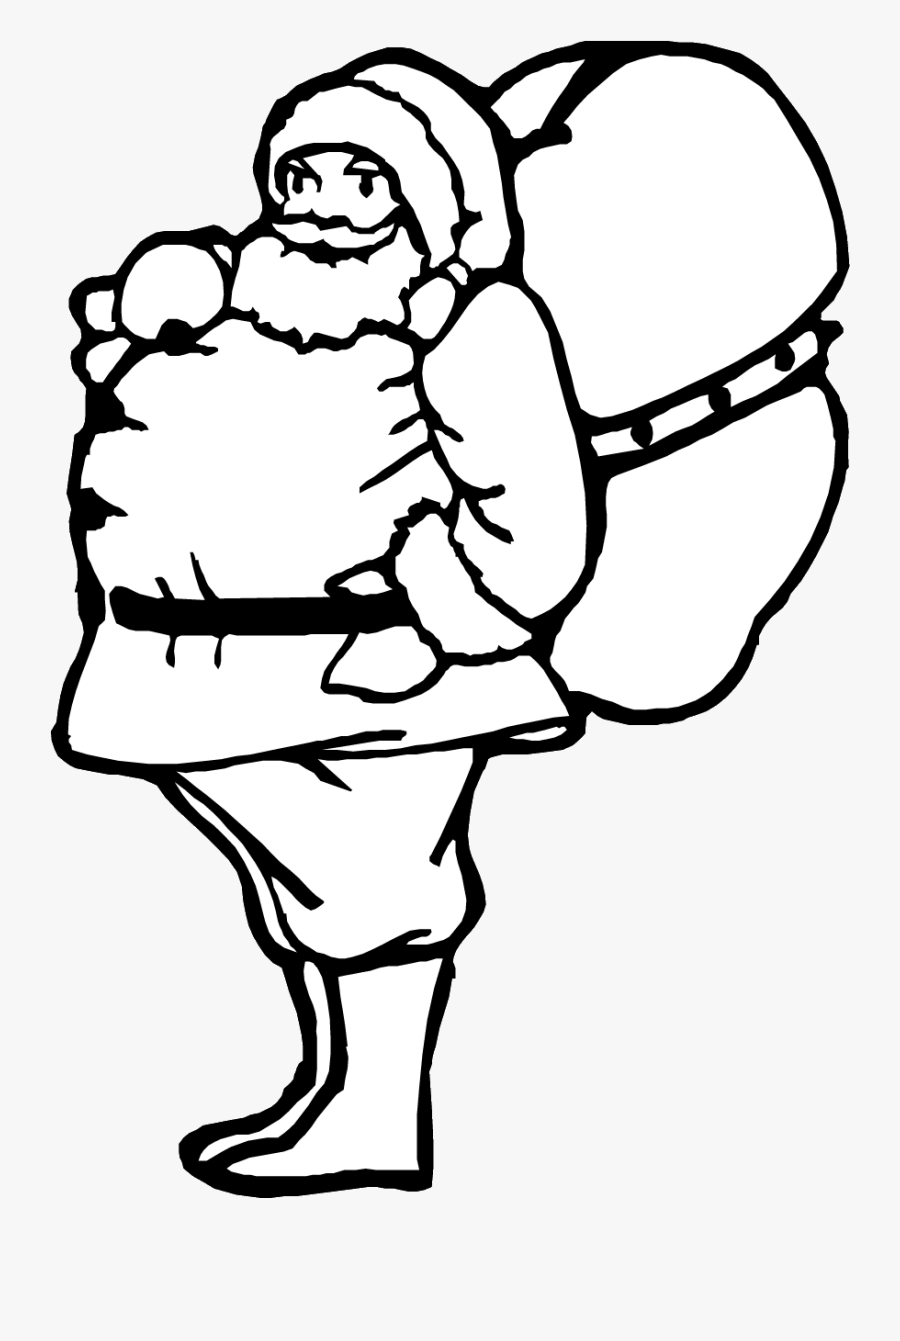 """Santa""""s Bag Of Toys Coloring Page Printable Christmas - Santa With Sack Coloring Pages, Transparent Clipart"""